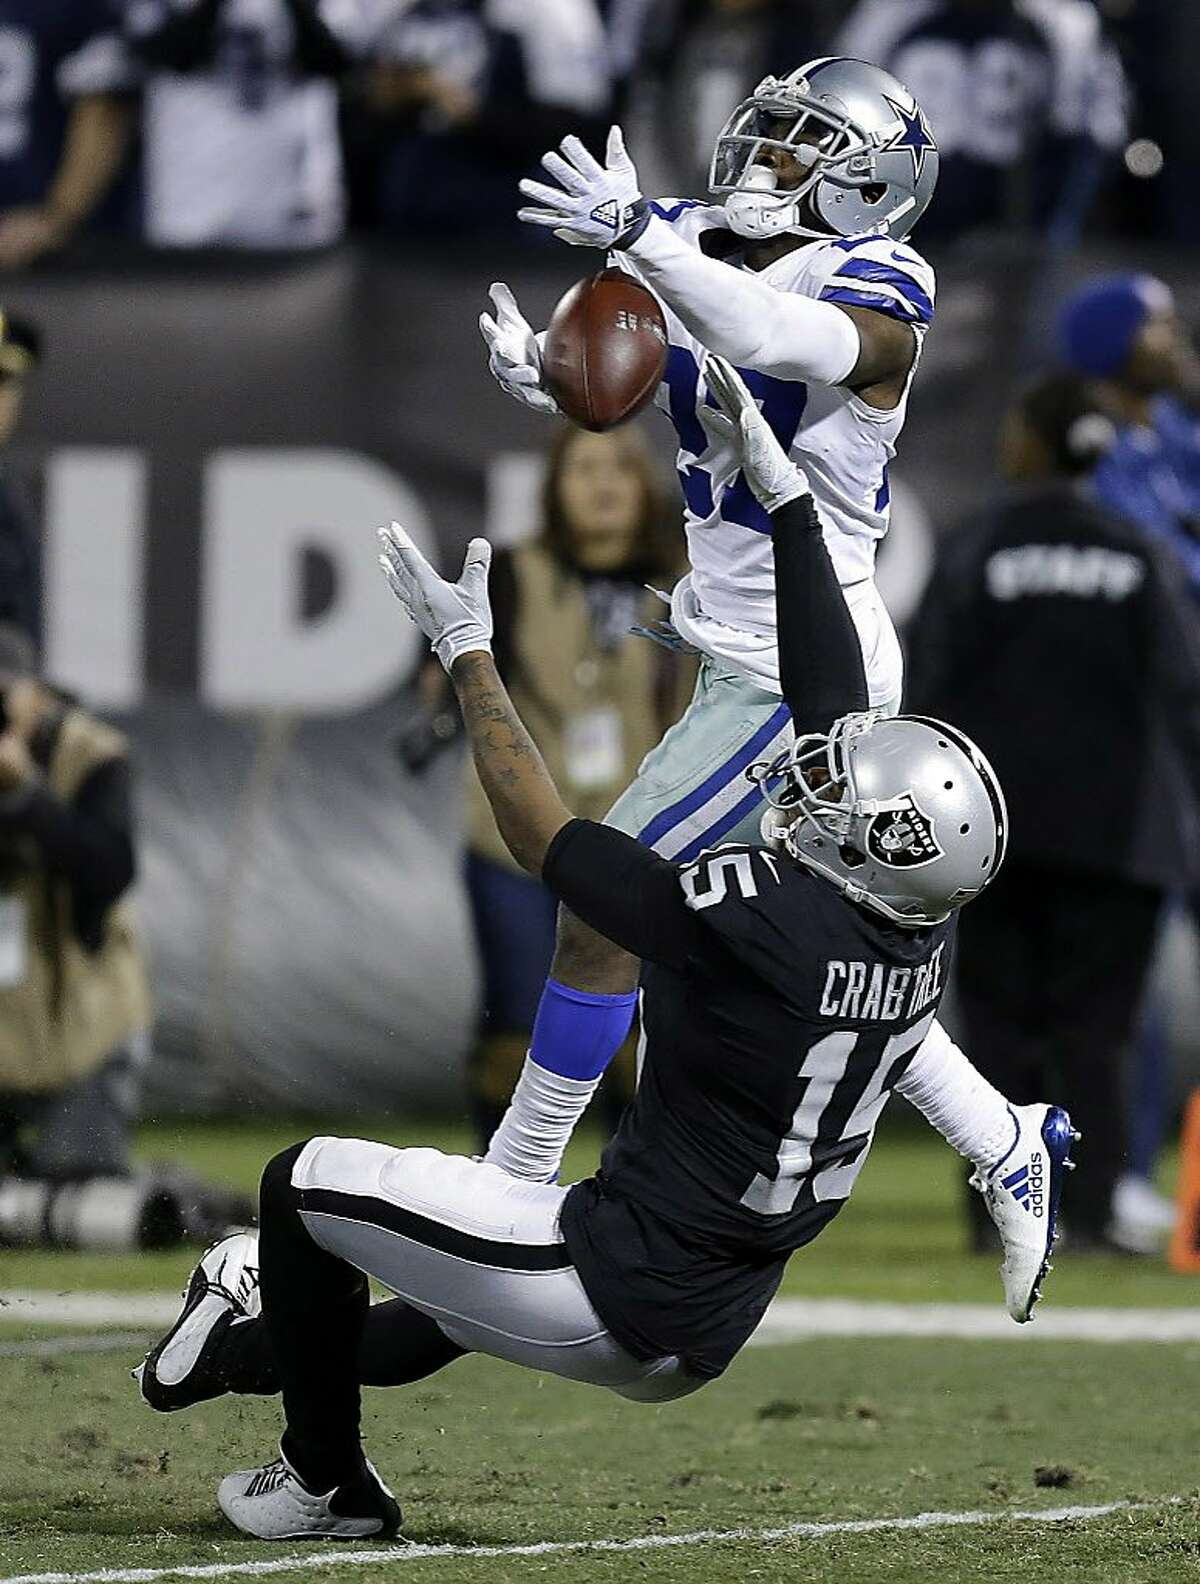 Dallas Cowboys cornerback Jourdan Lewis (27) is called for an interference penalty while defending a pass intended for Oakland Raiders wide receiver Michael Crabtree (15) during the second half of an NFL football game in Oakland, Calif., Sunday, Dec. 17, 2017. The Cowboys won 20-17. (AP Photo/Ben Margot)